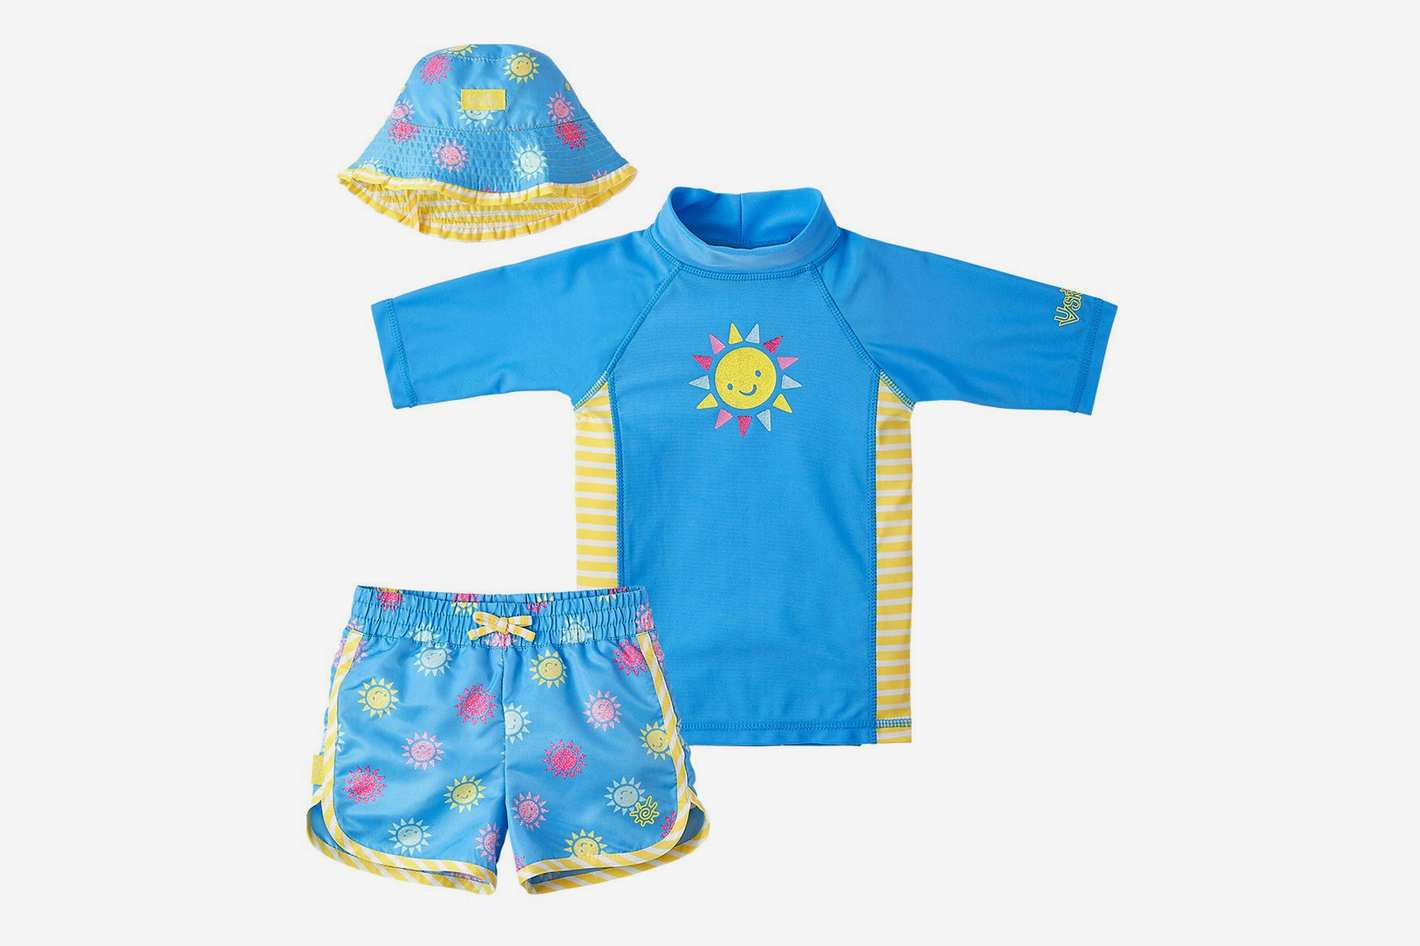 c6b98fd0fd30 18 Best Sun-Protective Clothing for Babies and Kids 2019